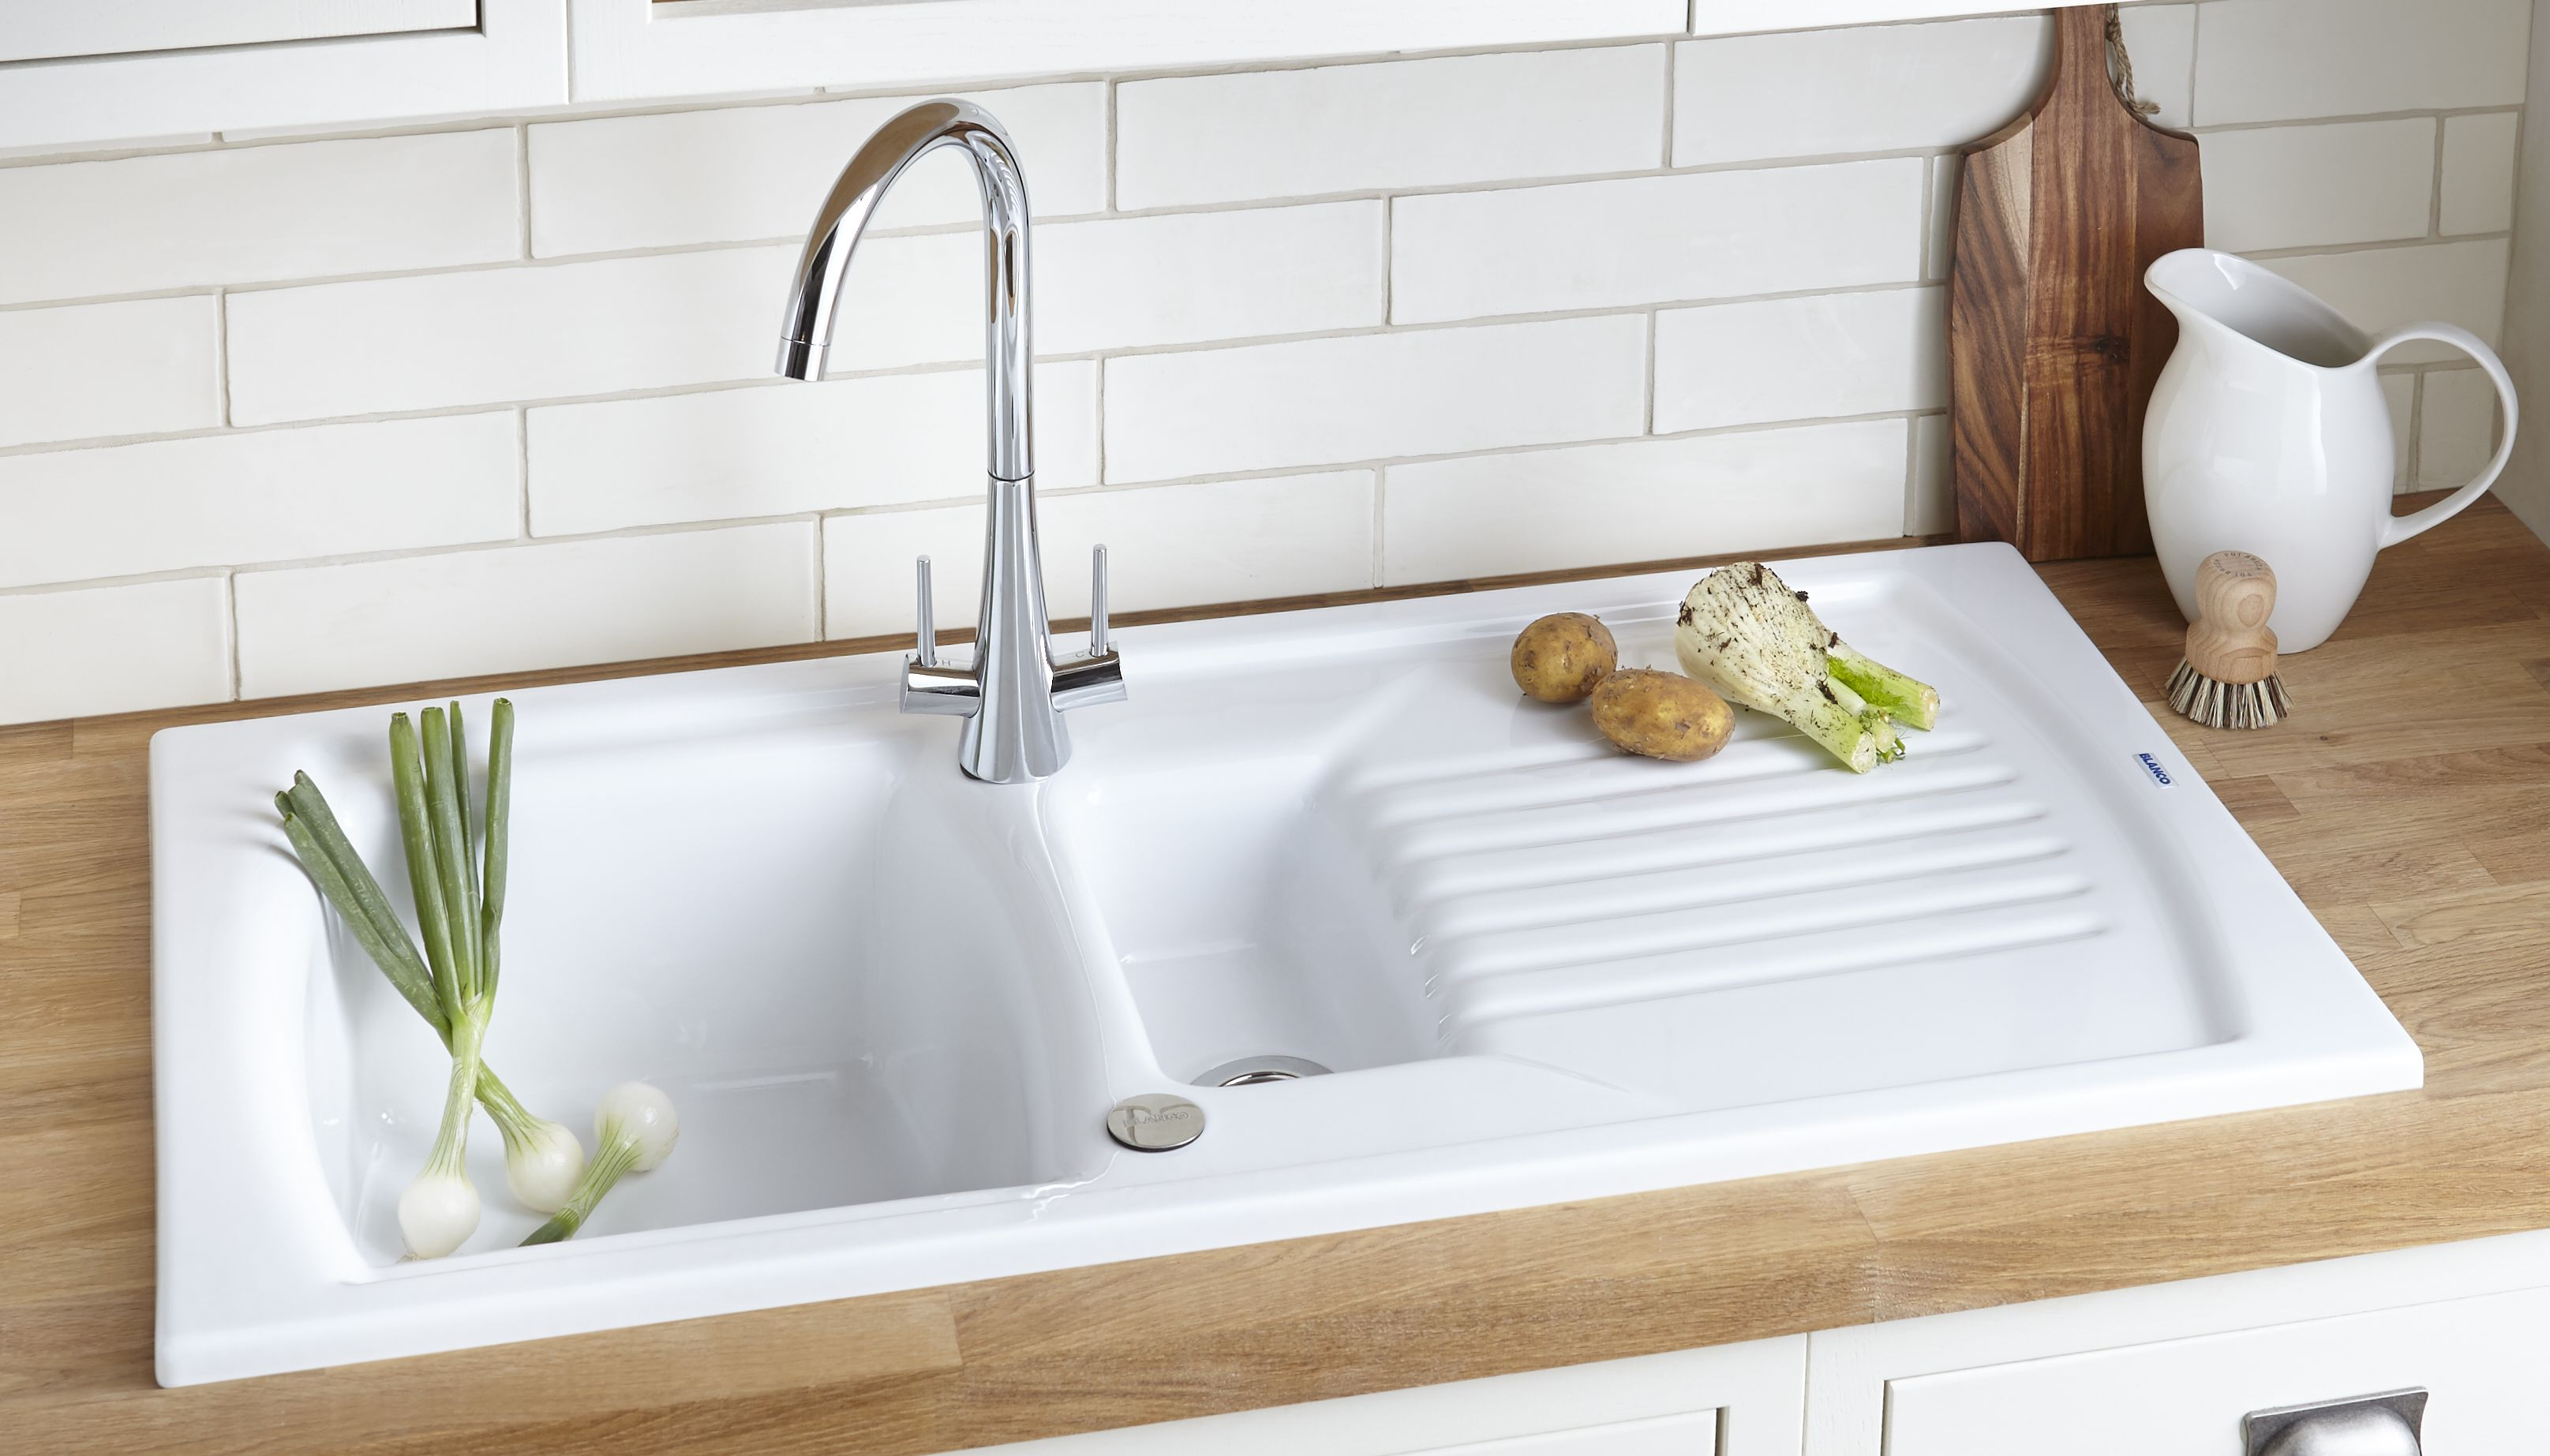 small white kitchen sinks kitchen sink buying guide ideas amp advice diy at b amp q 5570